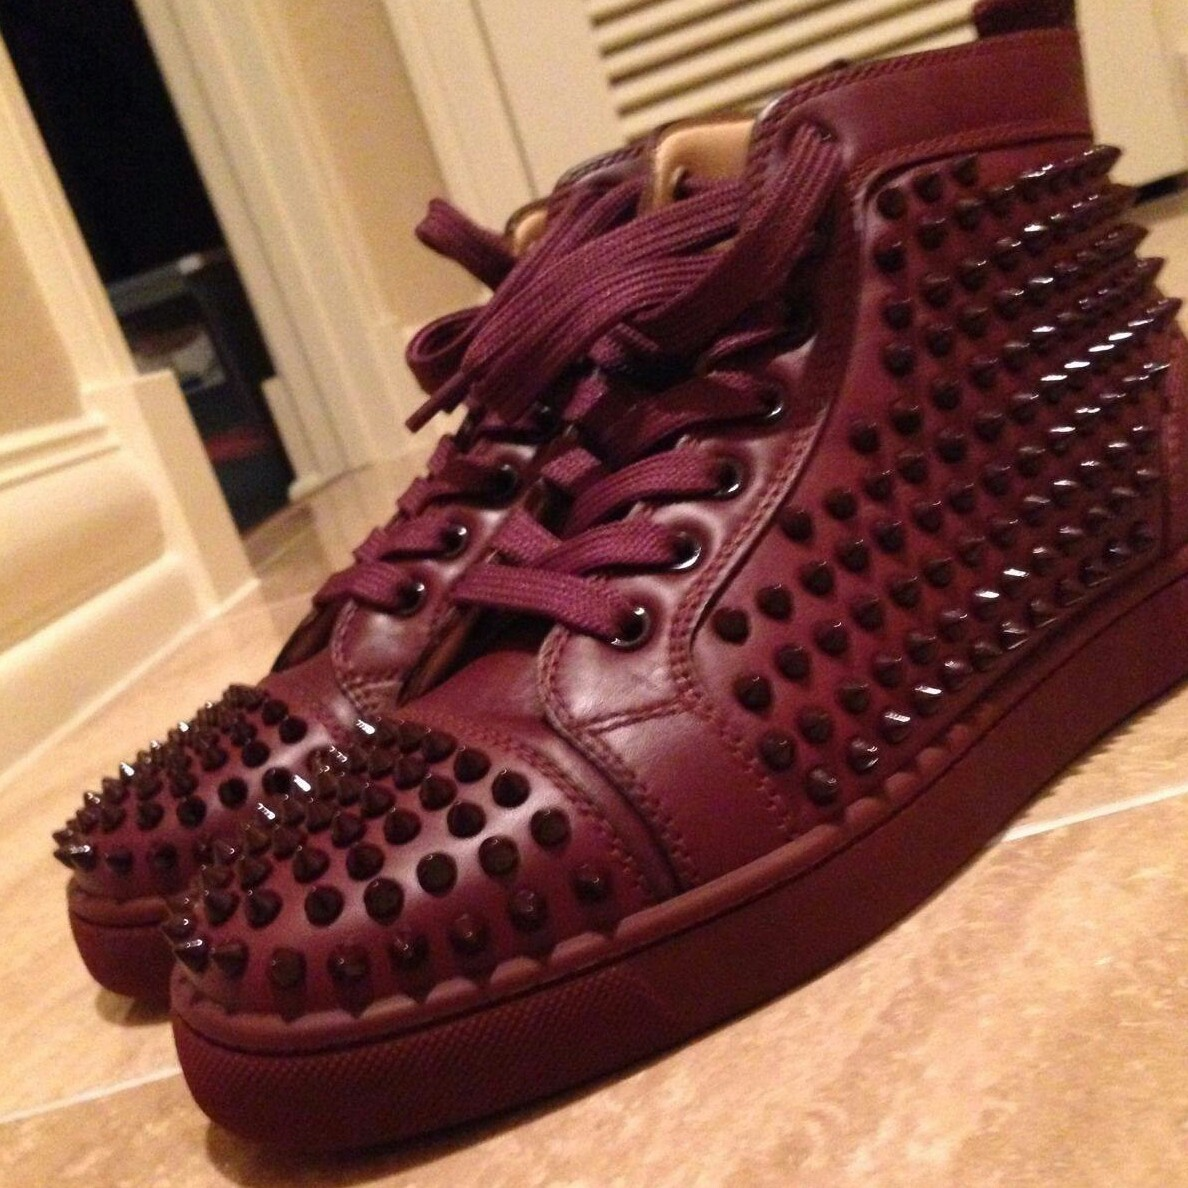 quality design aa170 4ca89 Christian Louboutin Spiked Lace Up Burgundy Sneakers ...